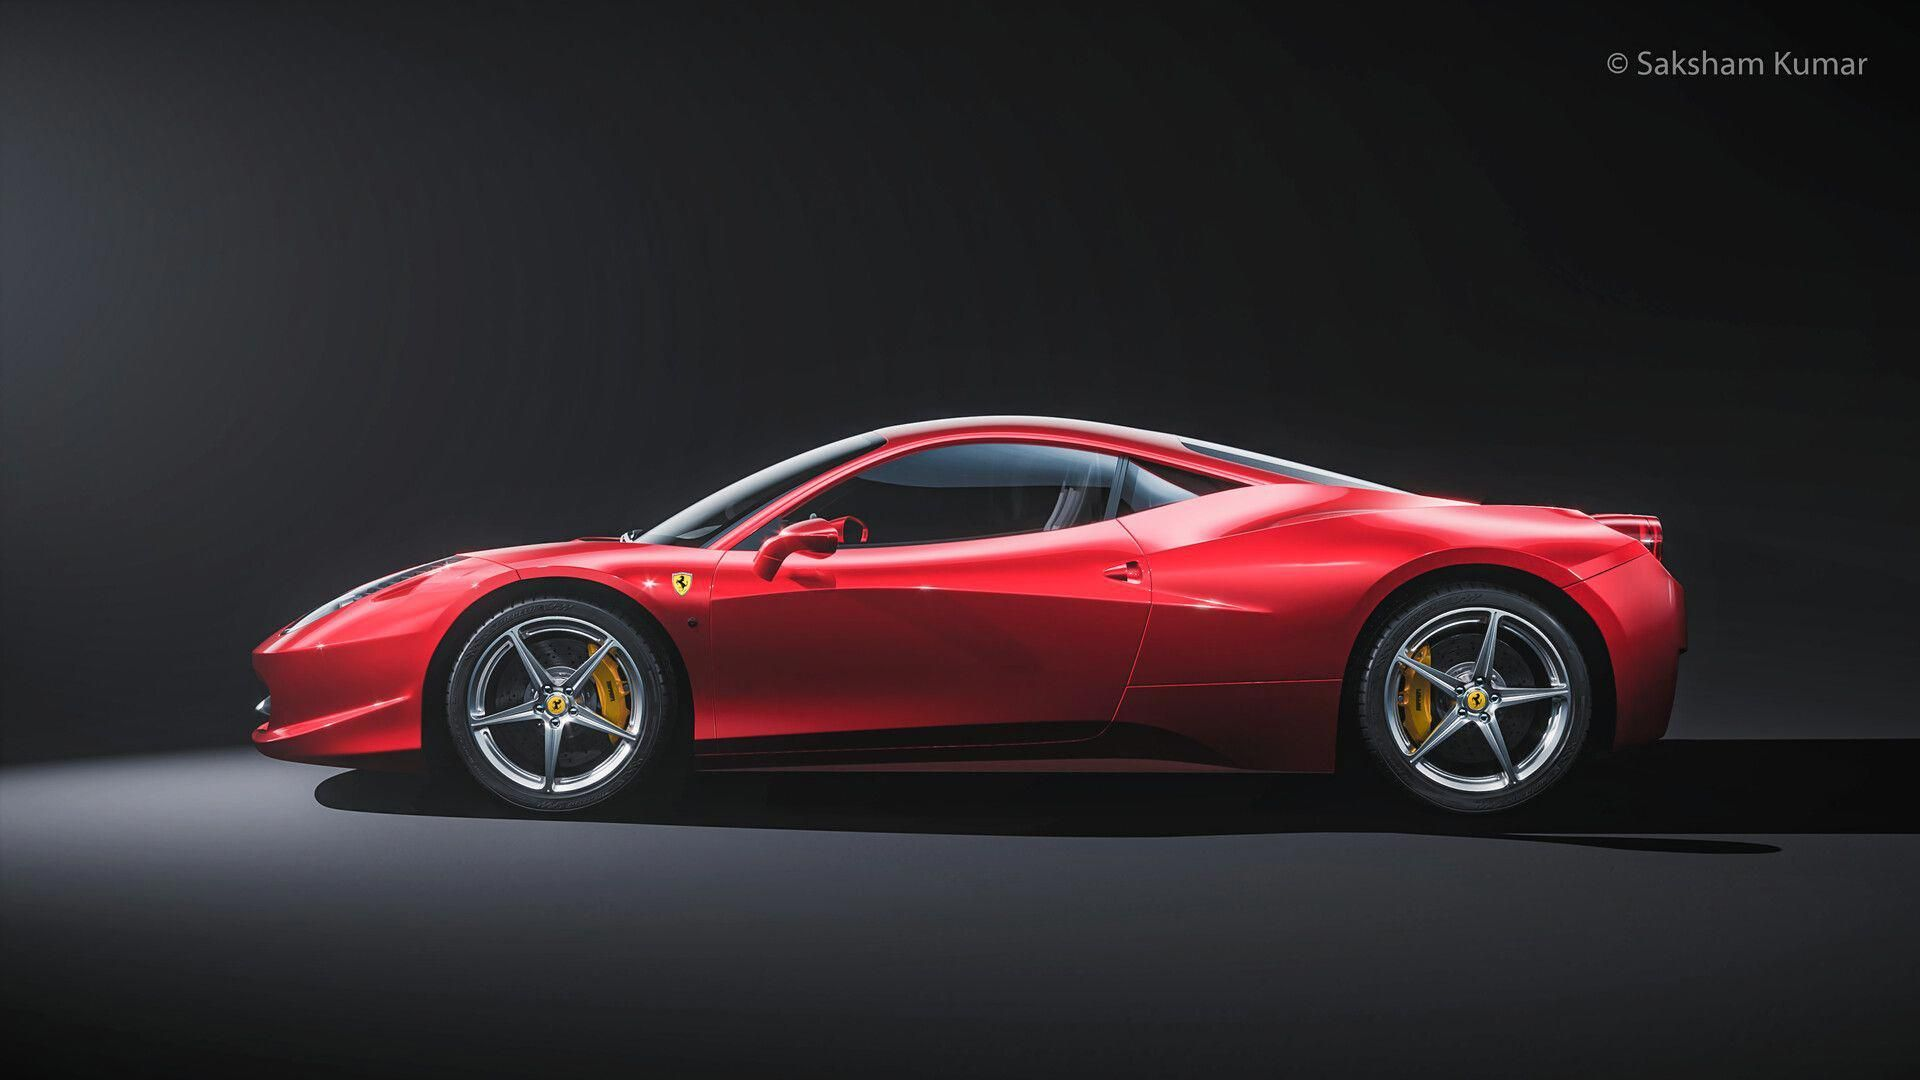 Ferrari 458 Italia Studio by Saksham KumarNew render: Ferrari 458 Italia Studio modeled and rendered in Blender Cycles. Post in PS & LR. Breakdown Included DM for queries. Responsible for all aspects. #Ferrari #ferrari458italia Ferrari 458 Italia Studio by Saksham KumarNew render: Ferrari 458 Italia Studio modeled and rendered in Blender Cycles. Post in PS & LR. Breakdown Included DM for queries. Responsible for all aspects. #Ferrari #ferrari458italia